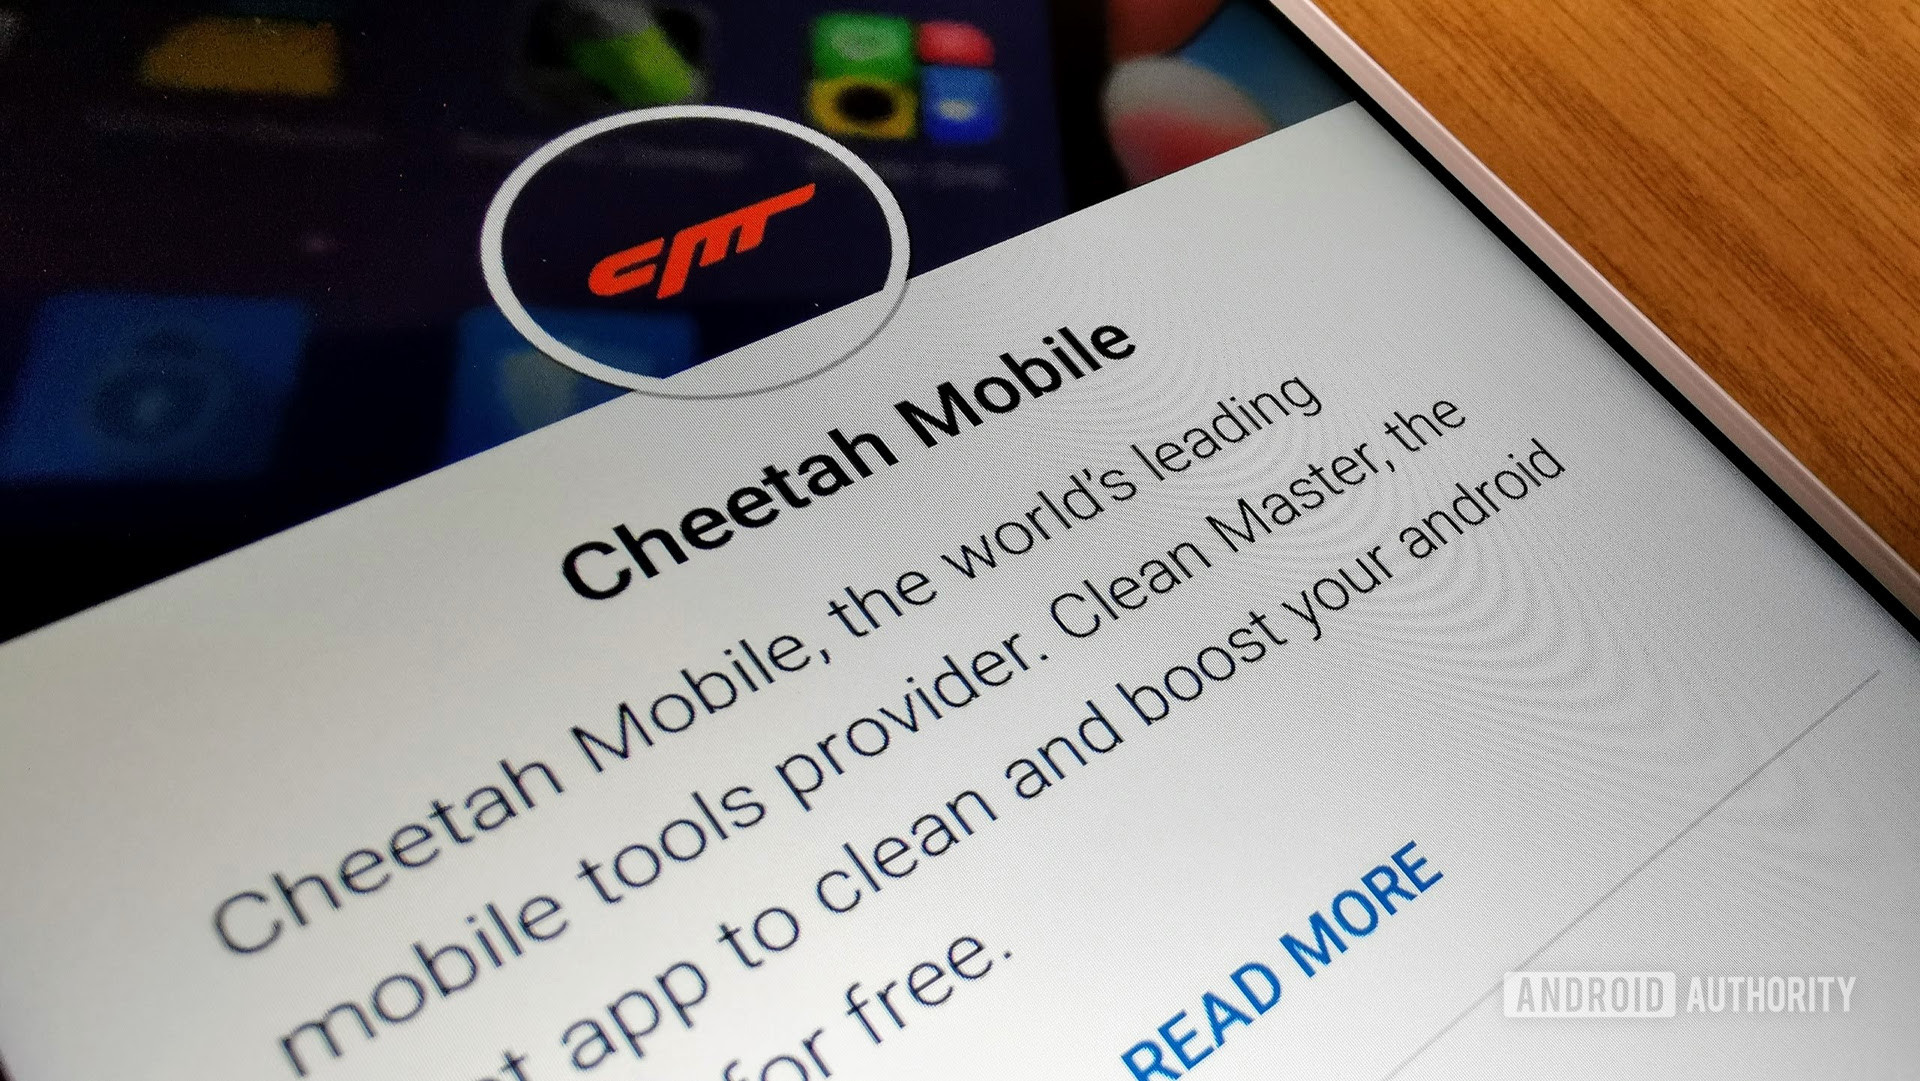 The Cheetah Mobile Play Store page.